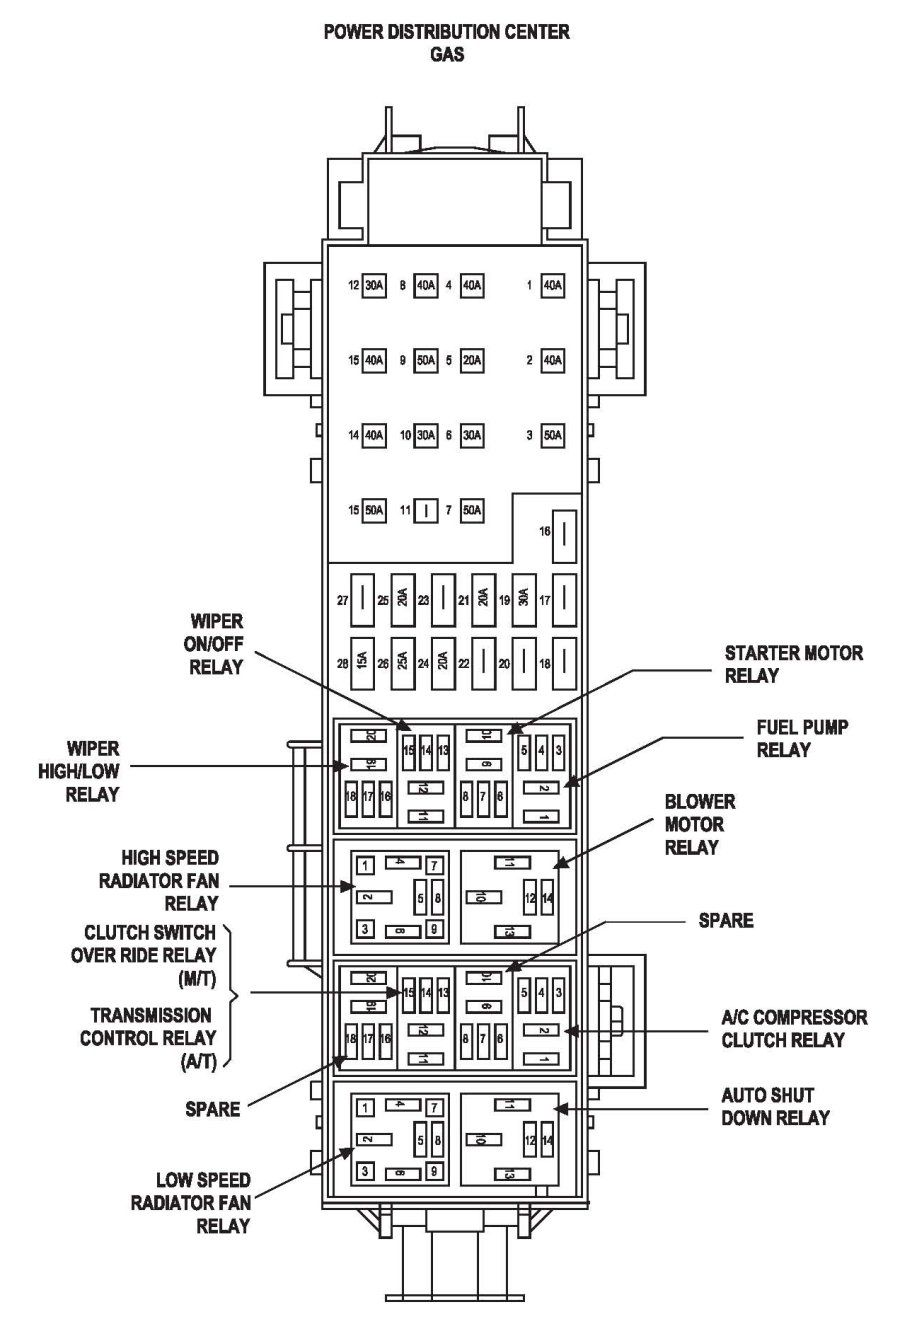 jeep liberty fuse box diagram image details jeep liberty rh pinterest com jeep xj fuse panel diagram 2008 jeep grand cherokee fuse panel diagram